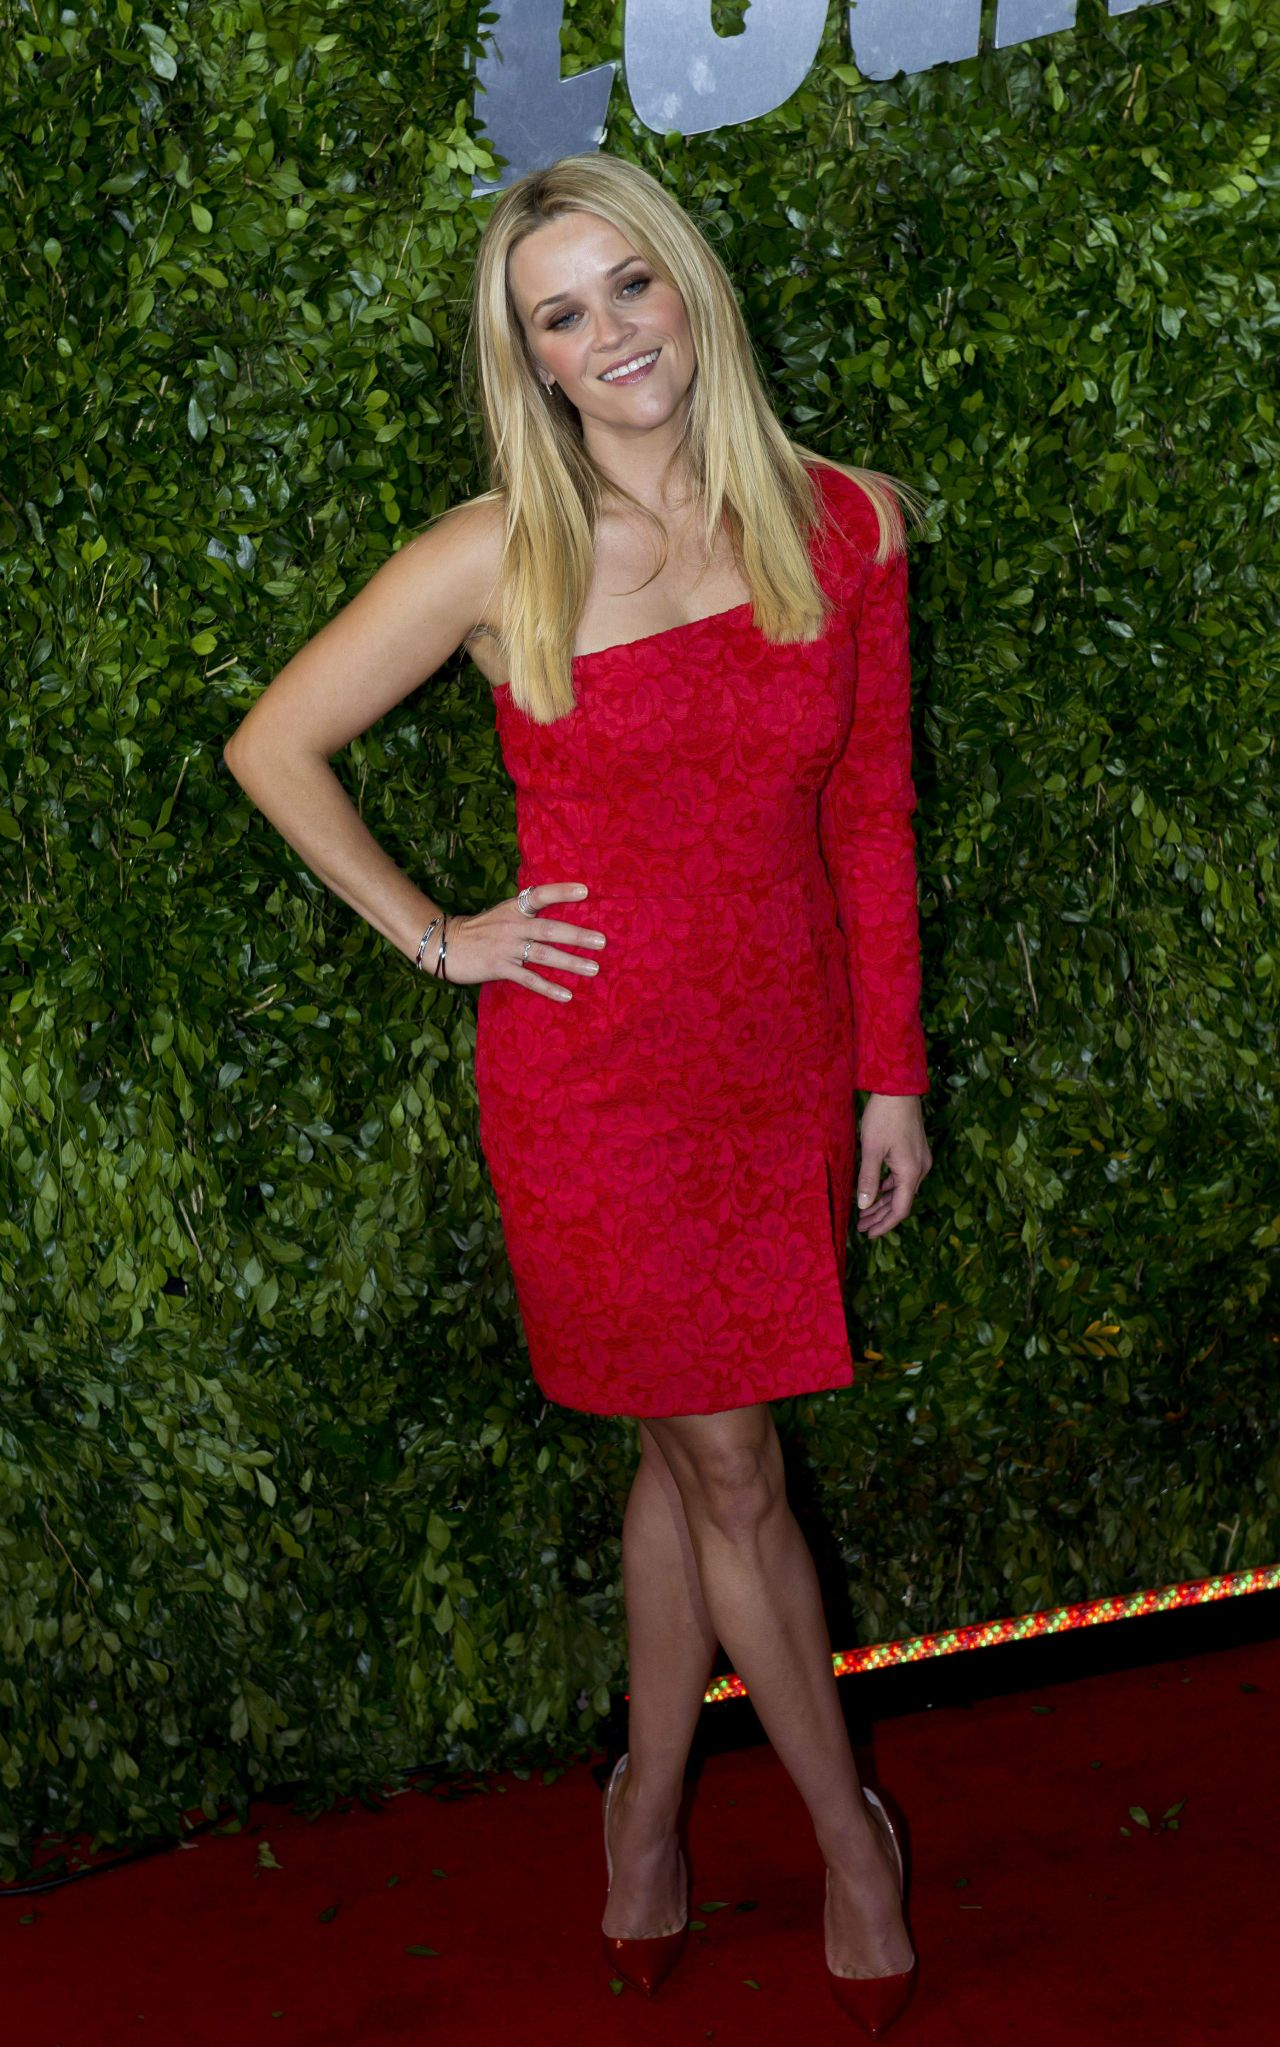 reese-witherspoon-sofia-vergara-hot-pursuit-premiere-in-mexico-city_9